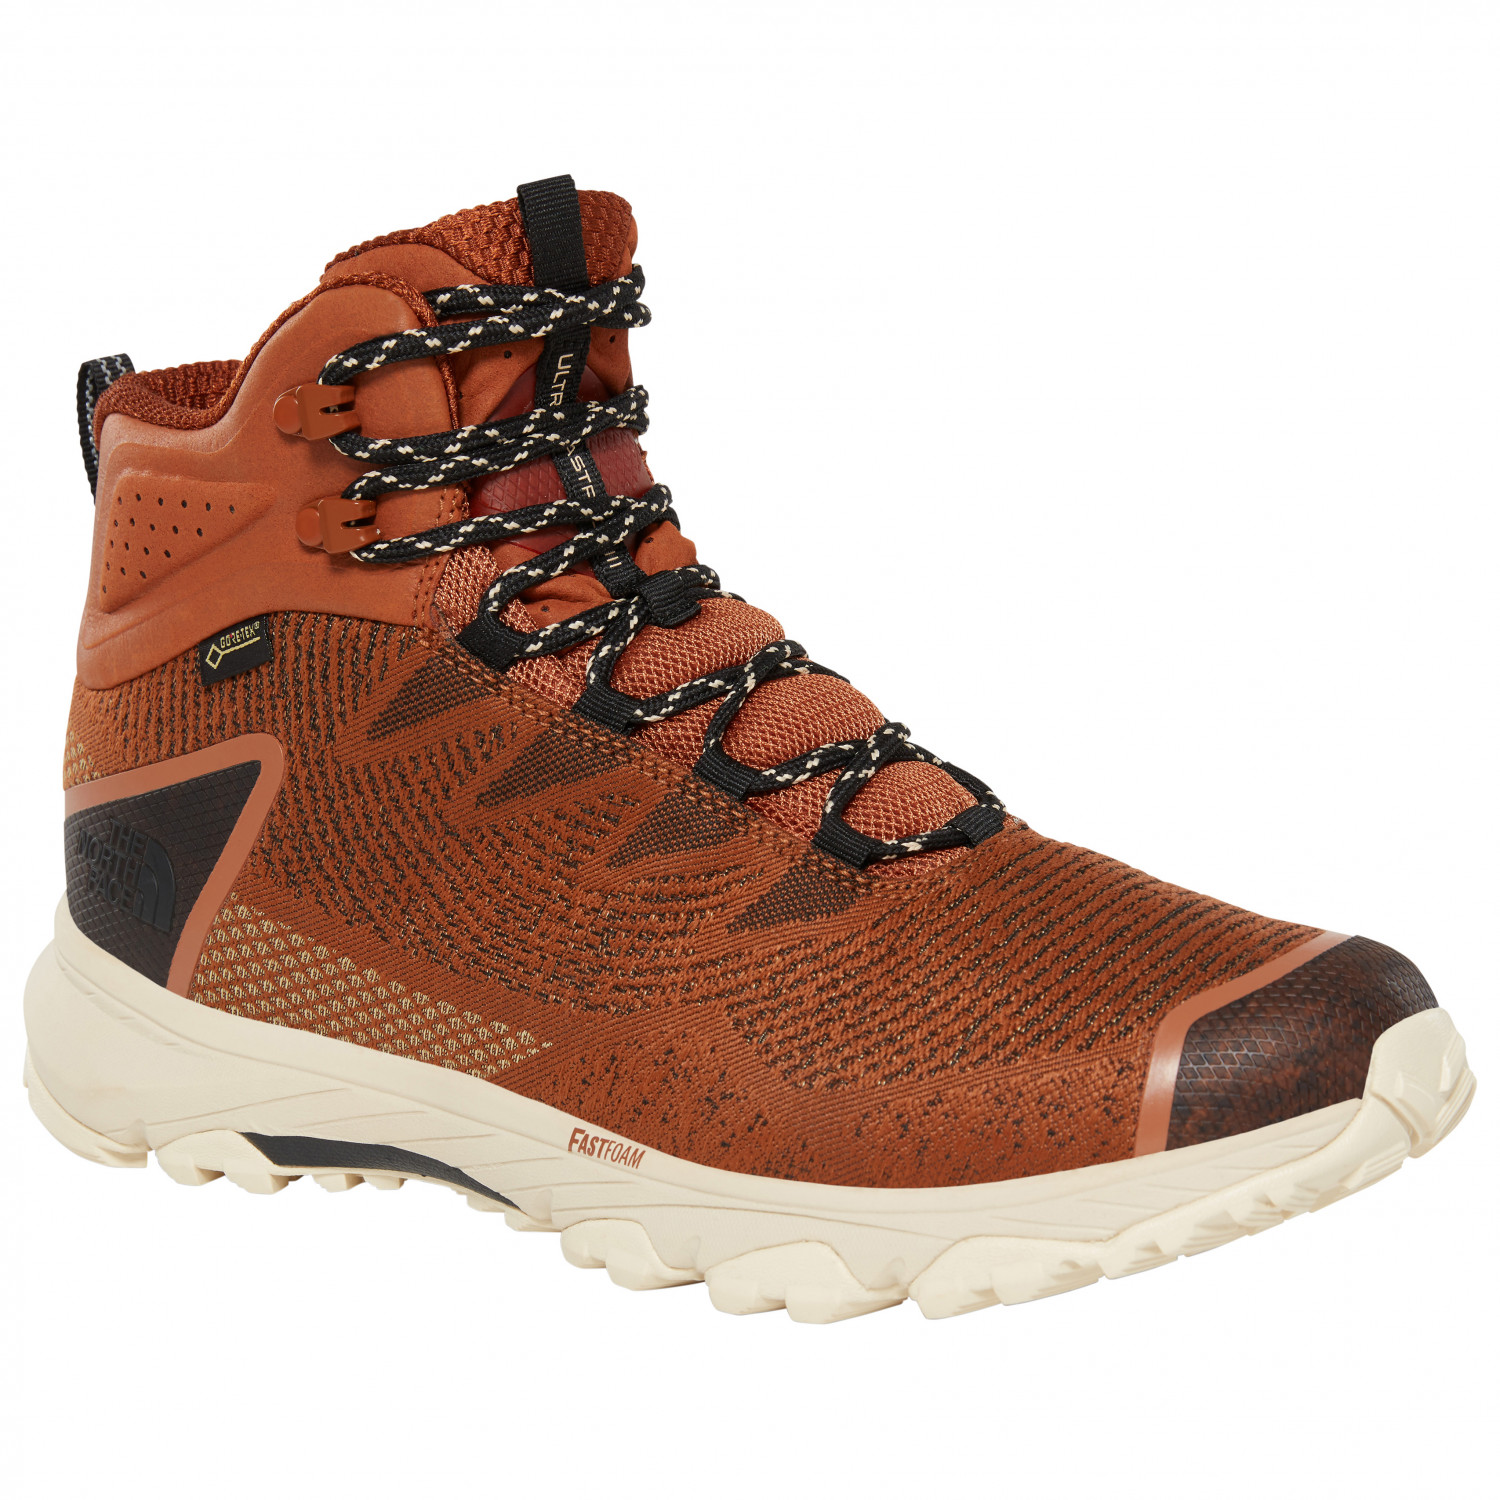 4c6c66fe68 The North Face - Ultra Fastpack III Mid GTX Woven - Scarpe da trekking -  Blackened Pearl / Meld Grey | 8,5 (US)